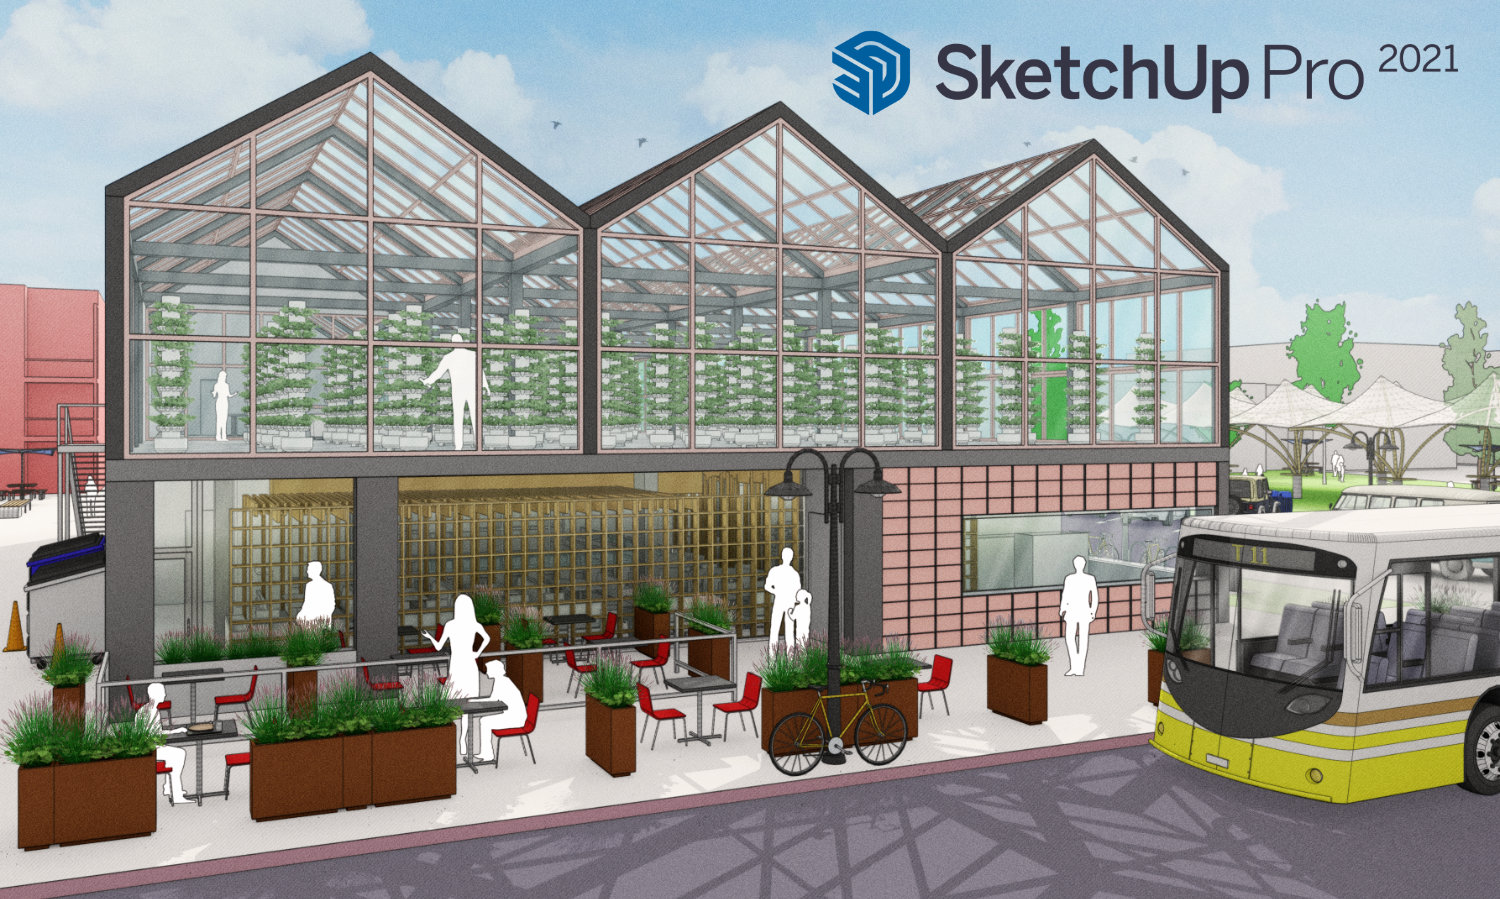 SketchUp 2021 is hier!